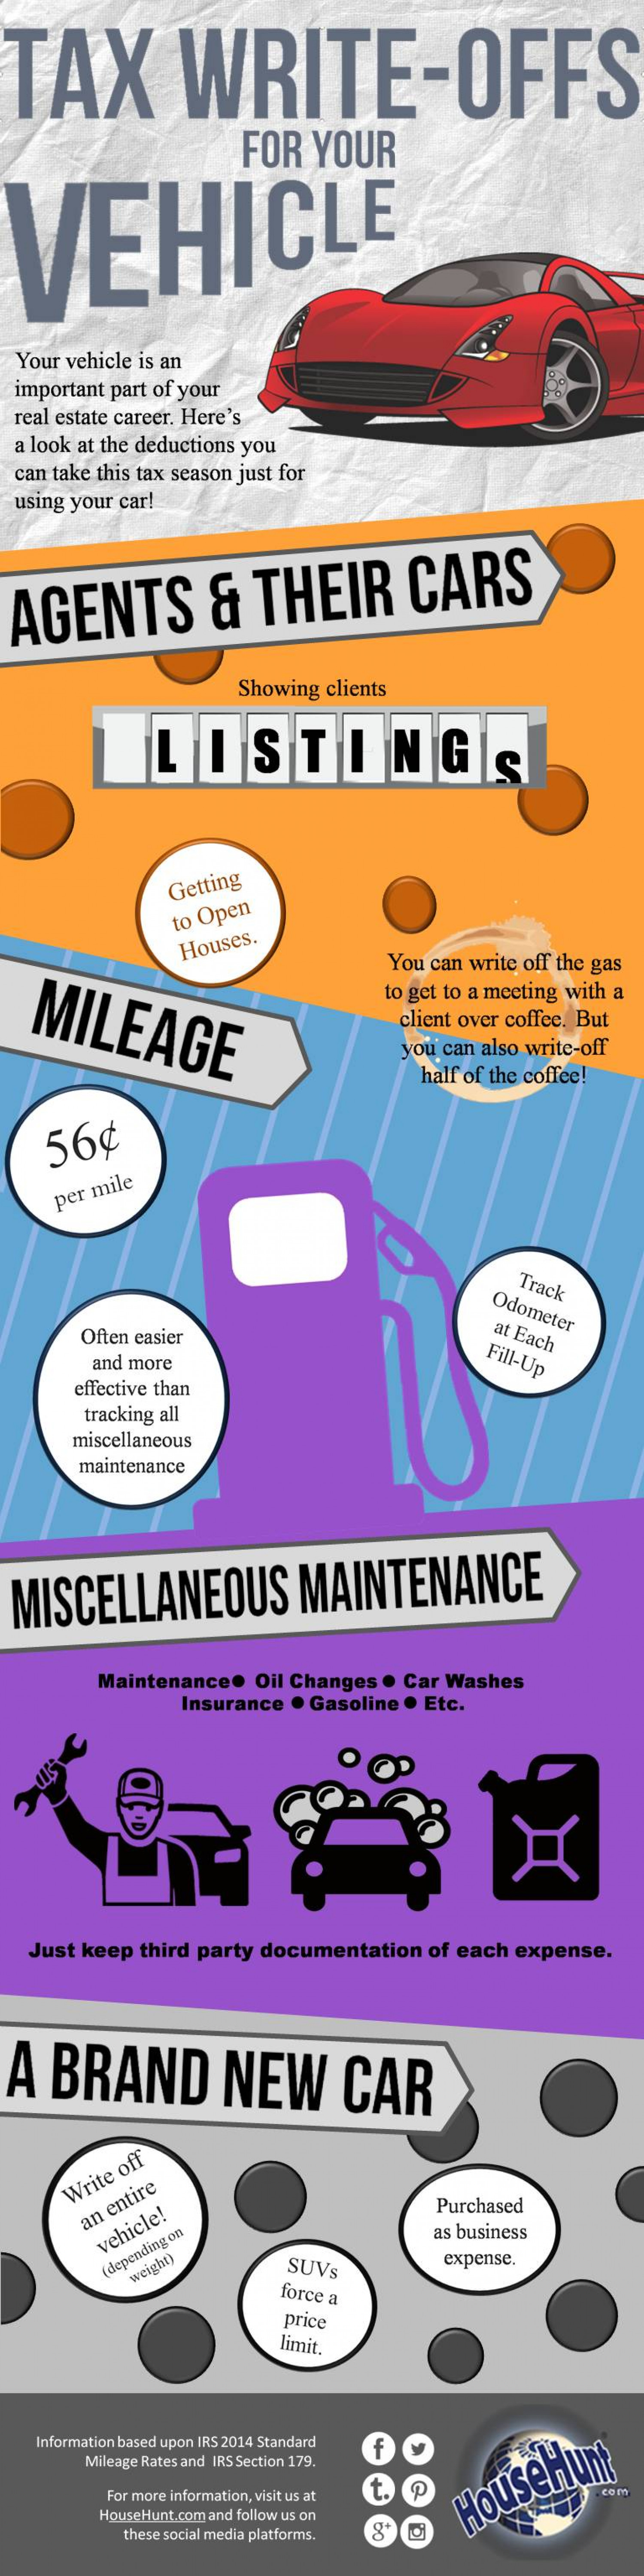 Tax Write-Offs for Your Vehicle Infographic